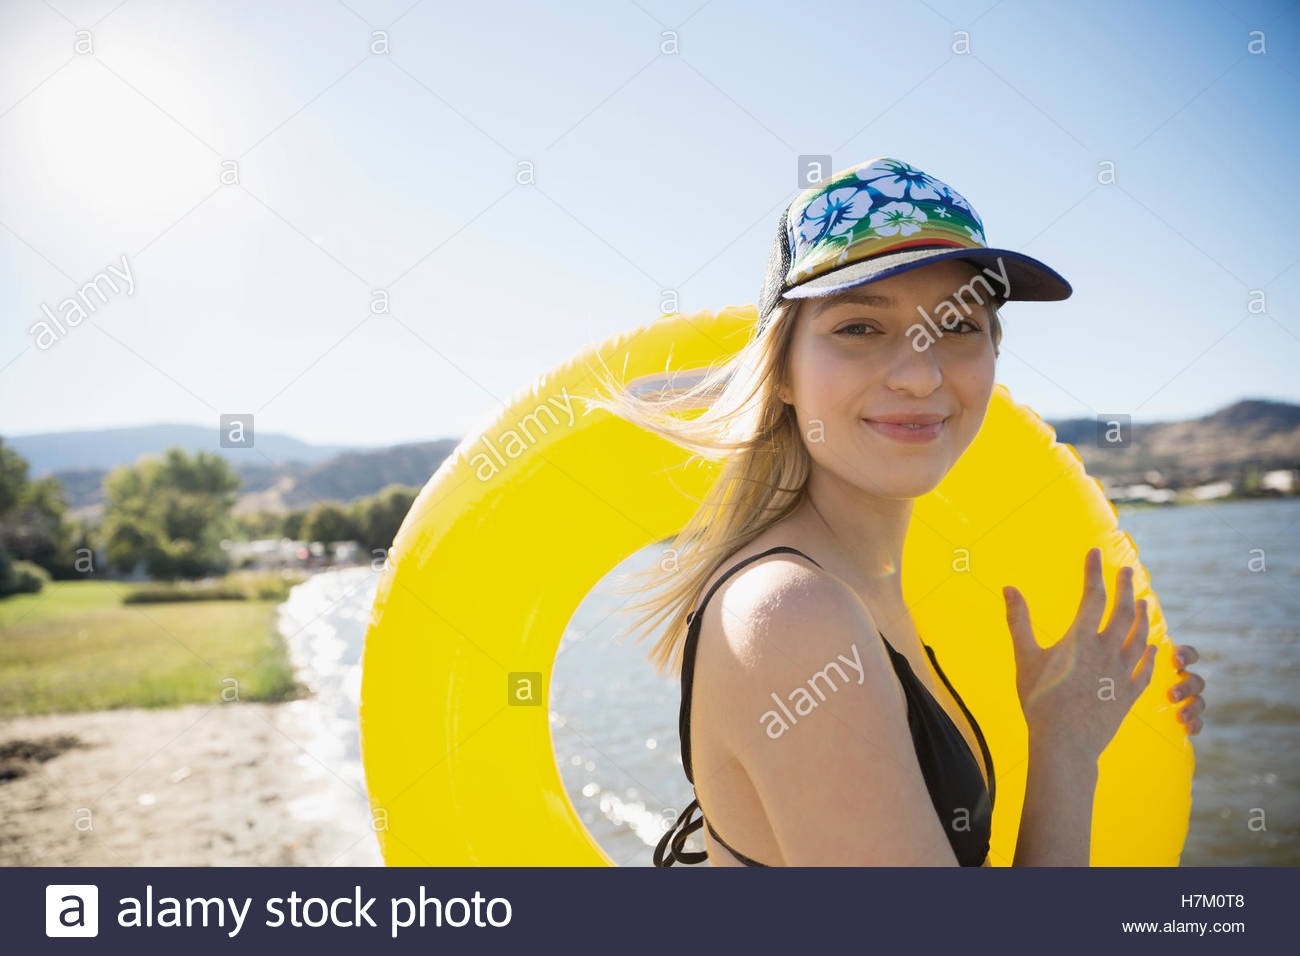 Smiling young woman in bikini with inner tube on sunny summer lake beach - Stock Image